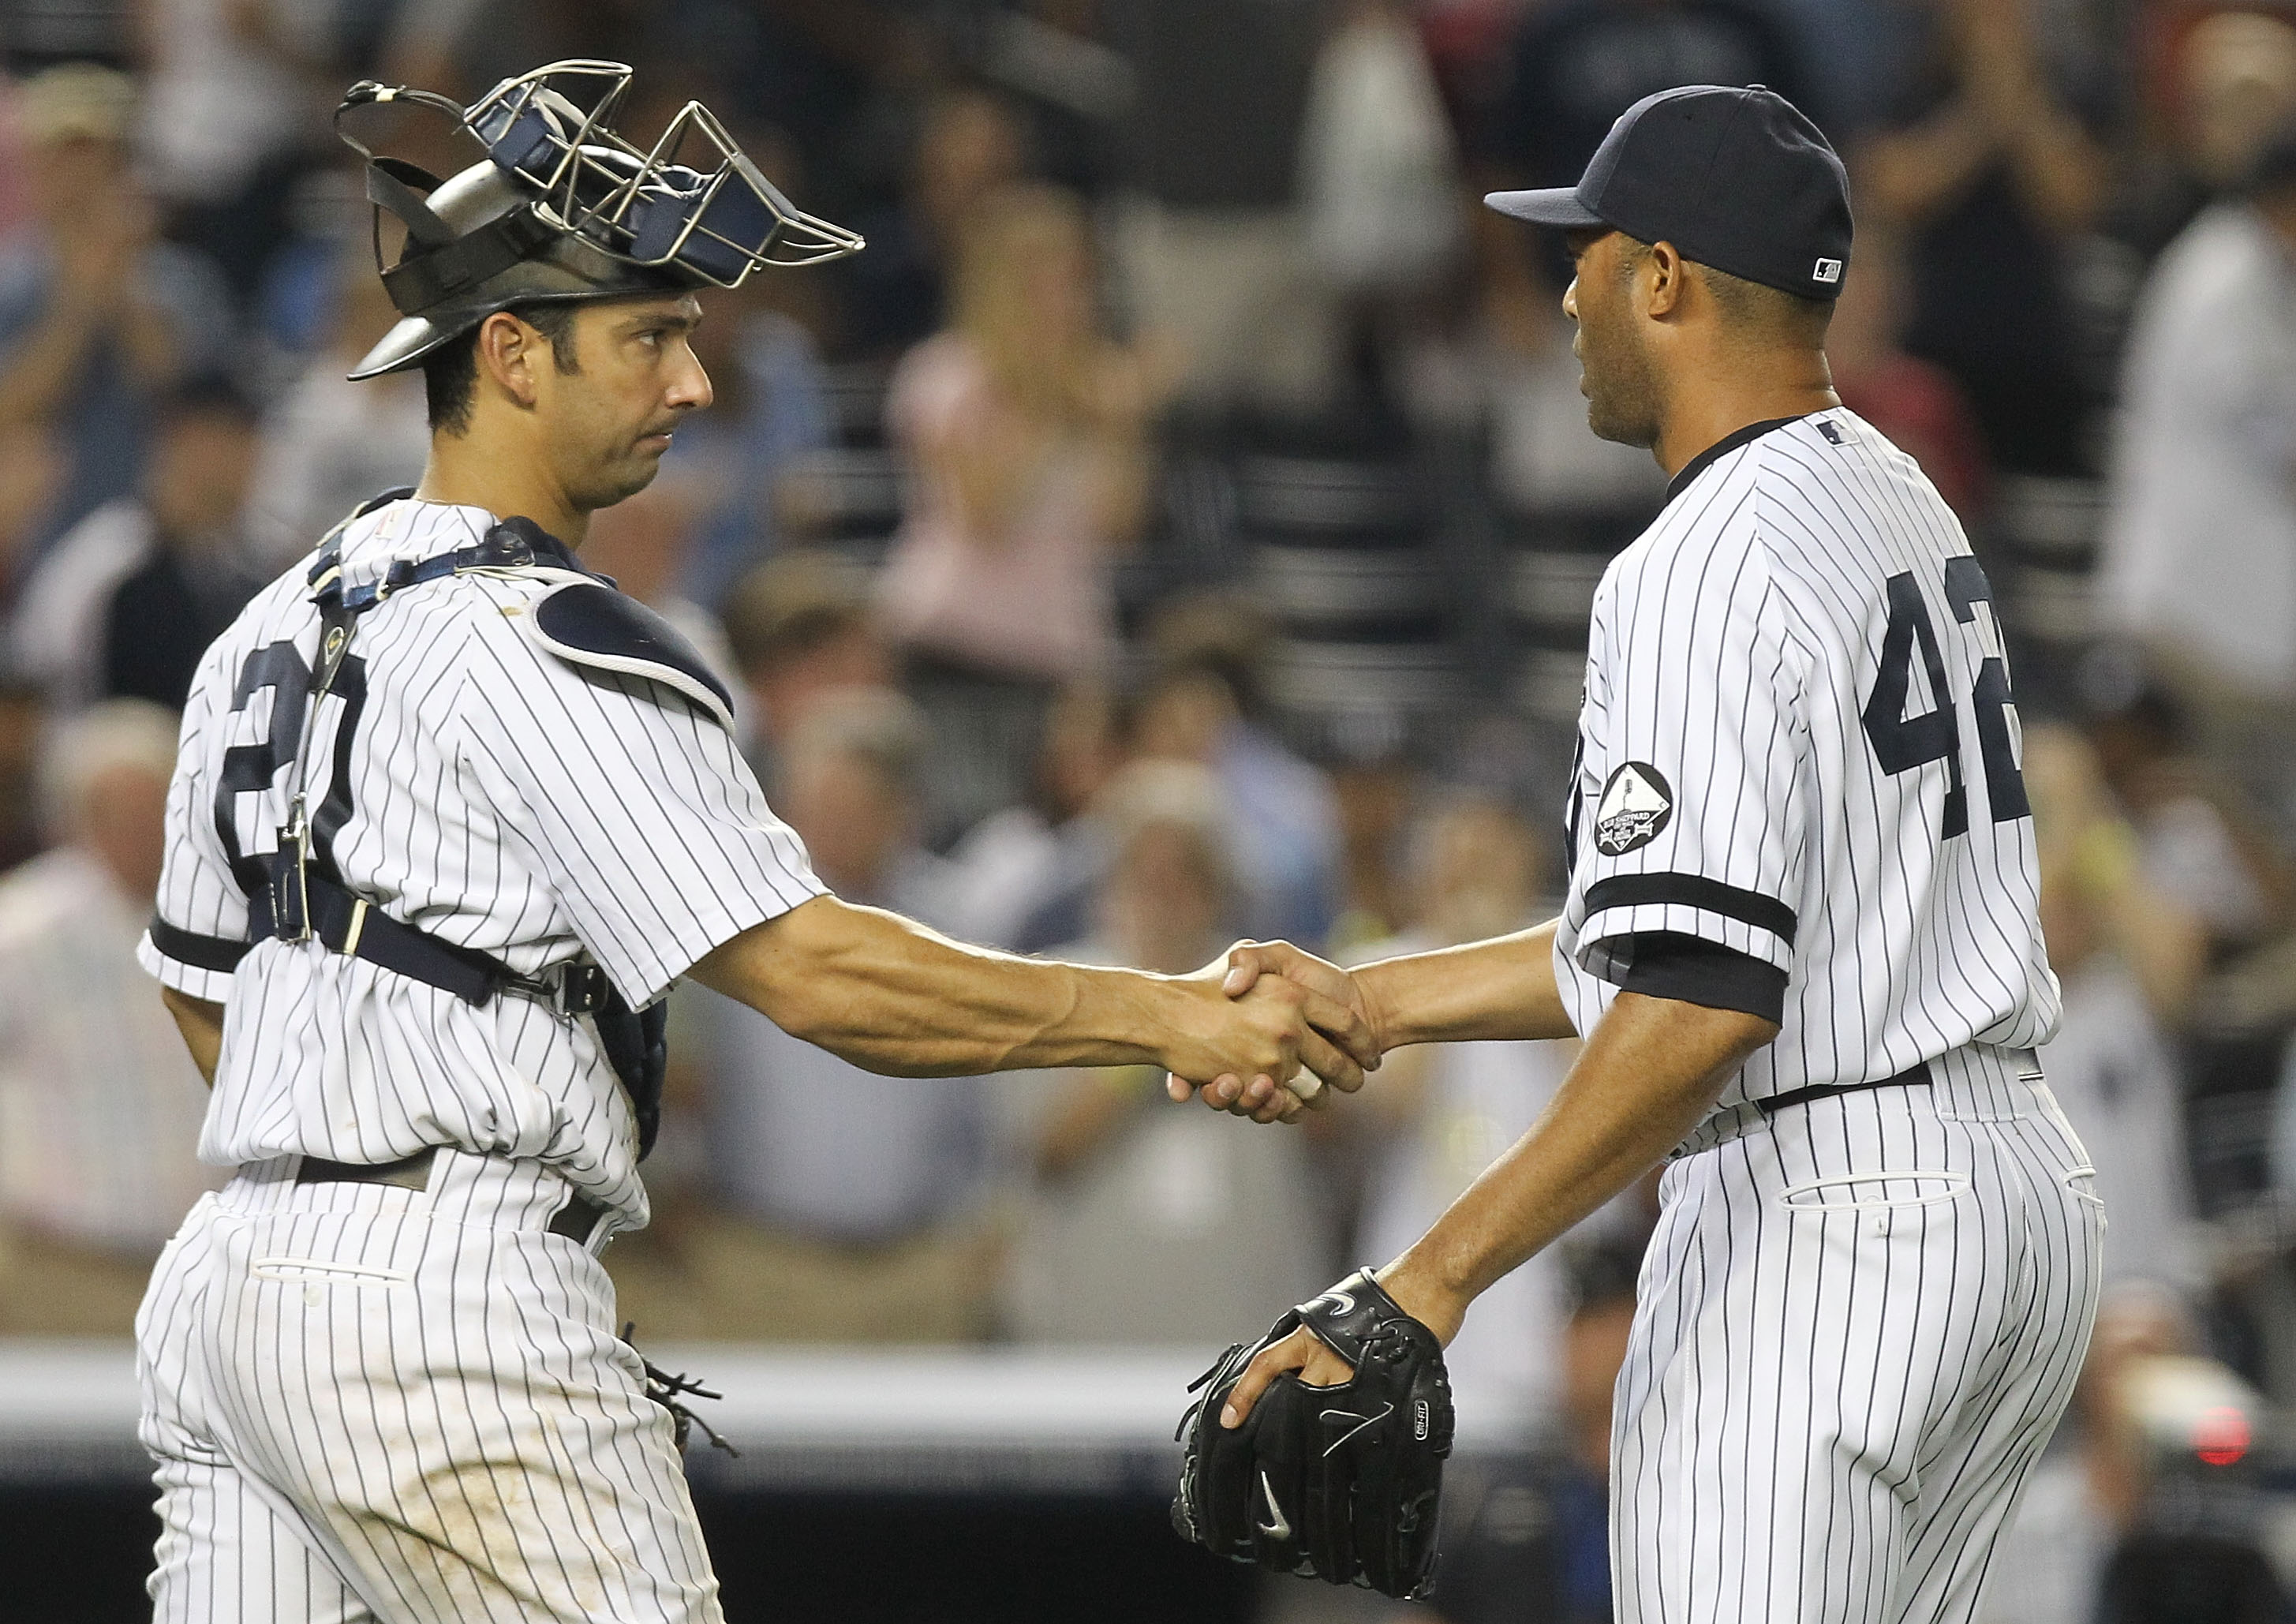 NEW YORK - AUGUST 18:  Mariano Rivera #42 of the New York Yankees celebrates the win with catcher Jorge Posada #20 against the Detroit Tigers at Yankee Stadium on August 18, 2010 in the Bronx borough of New York City.  (Photo by Nick Laham/Getty Images)